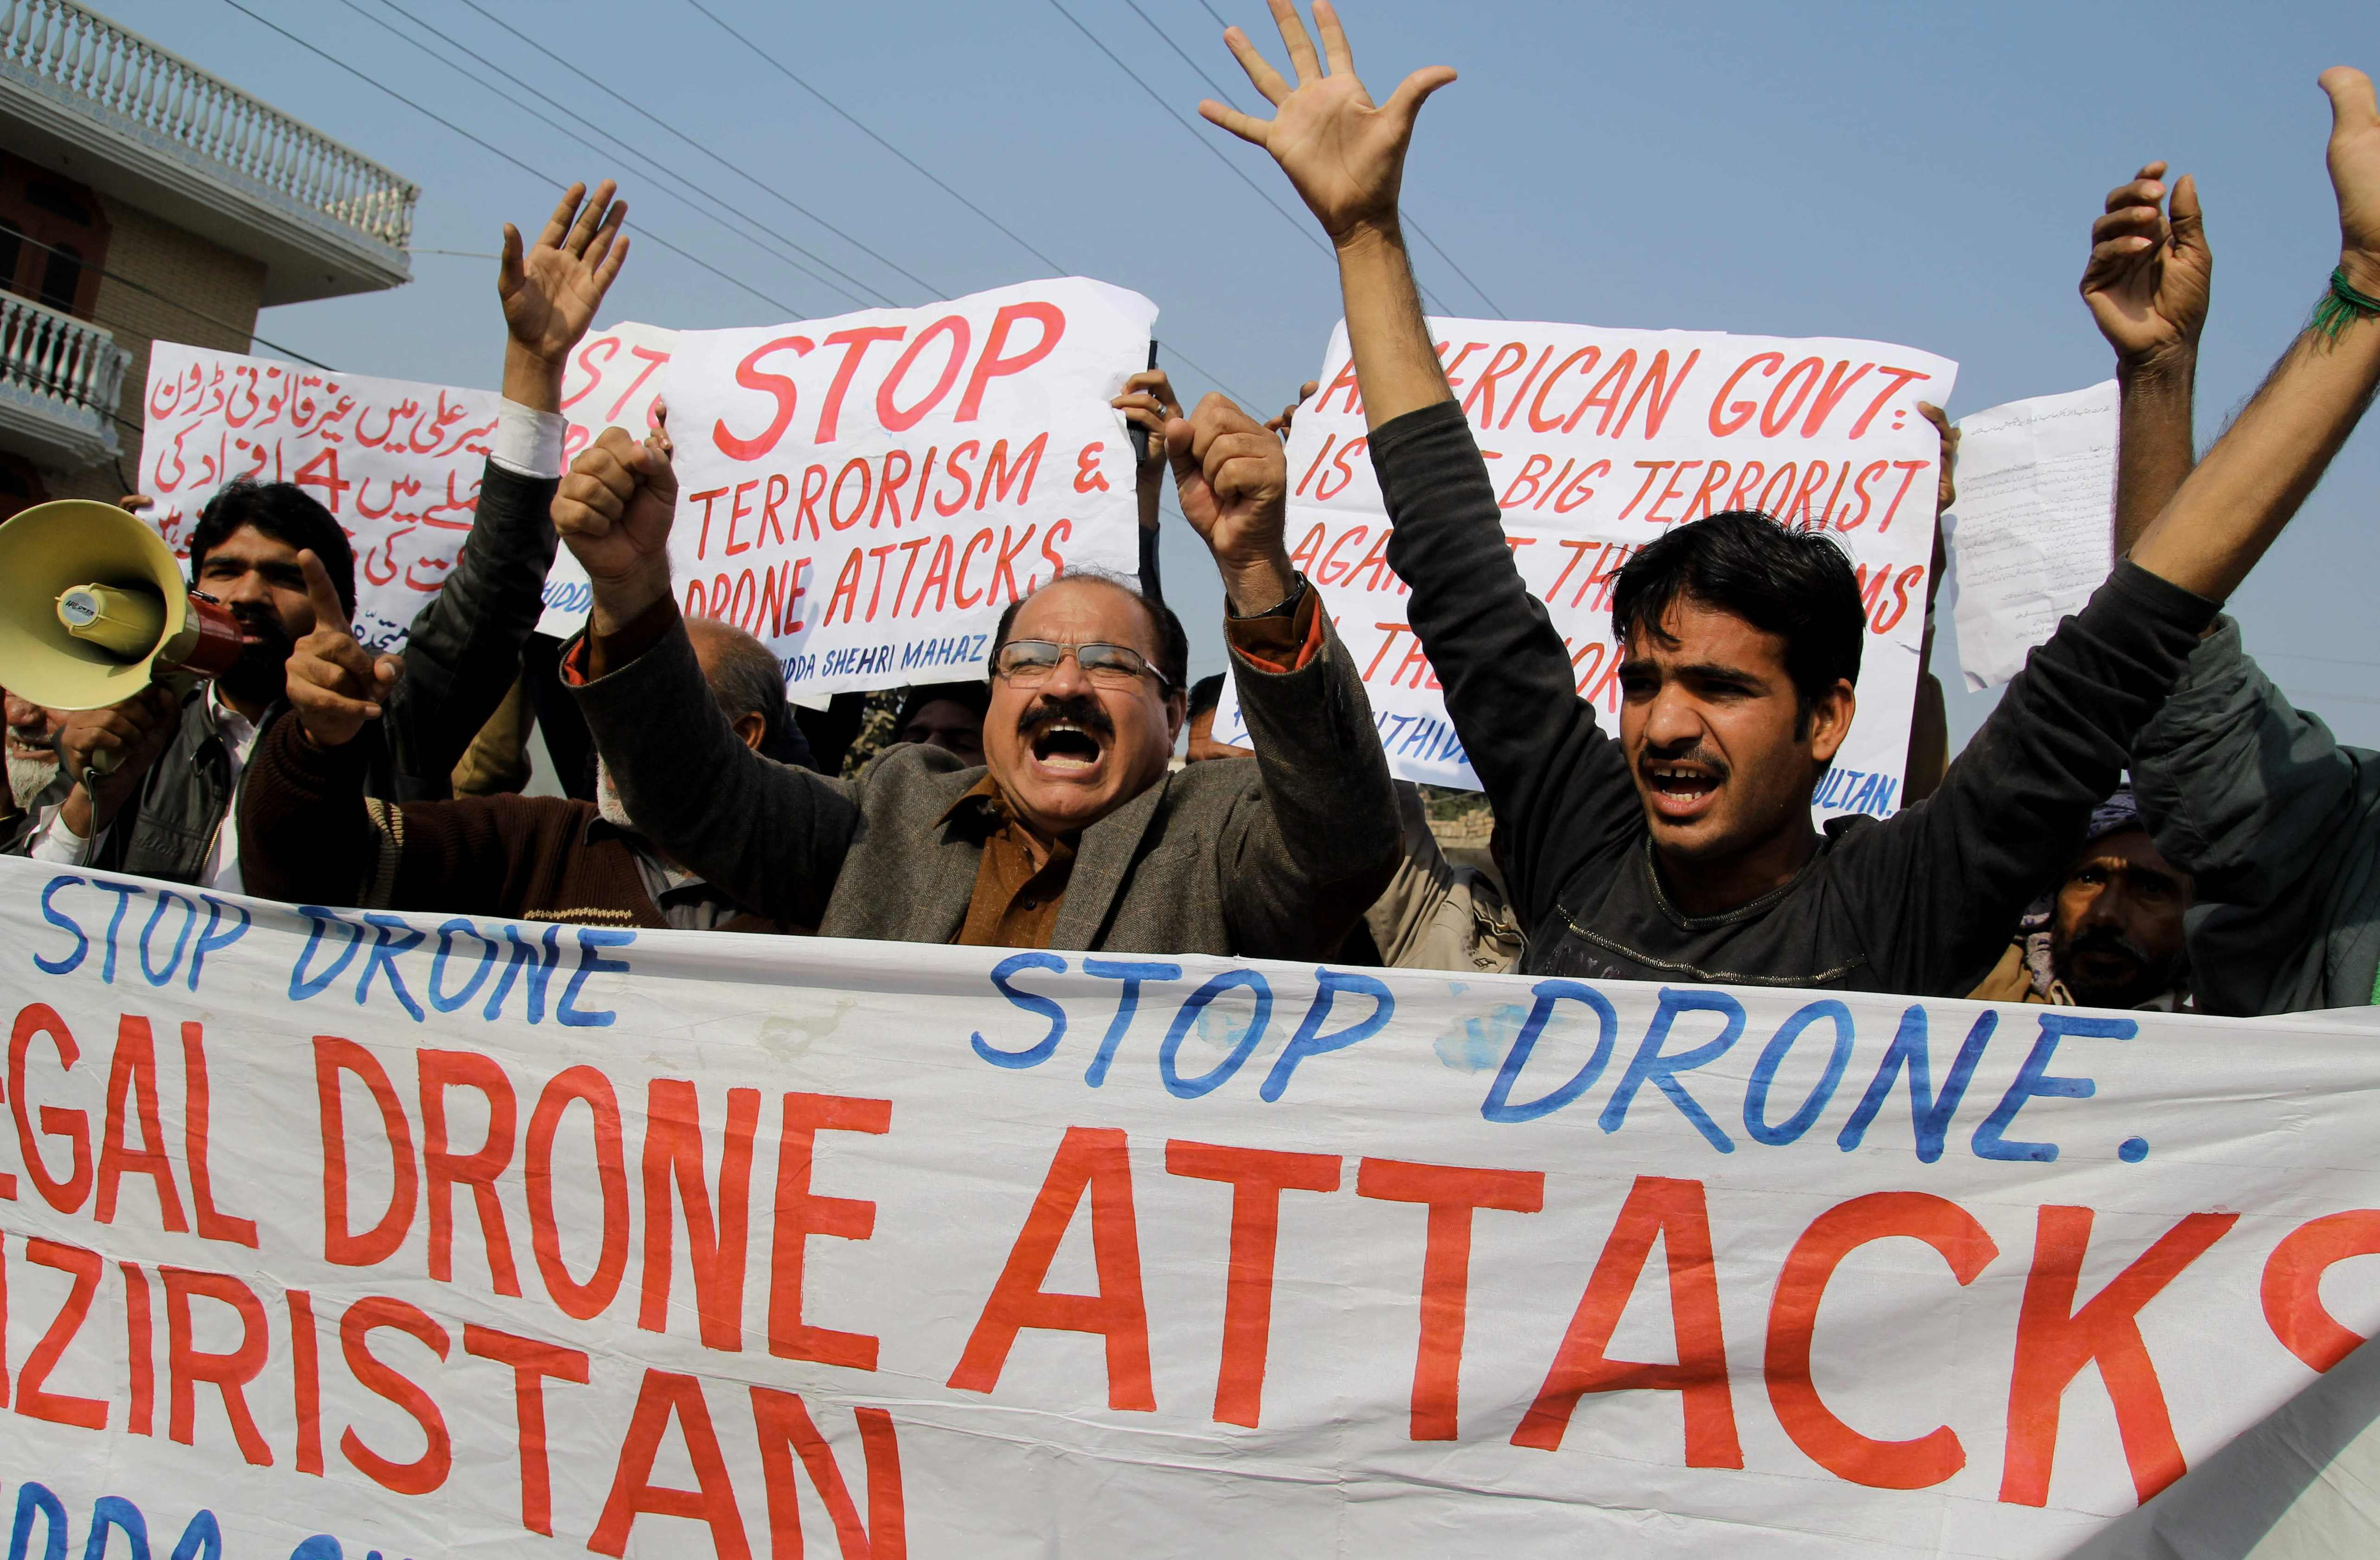 Activists shout slogans as they protest against a US drone attack in Multan, Pakistan on December 26, 2103.